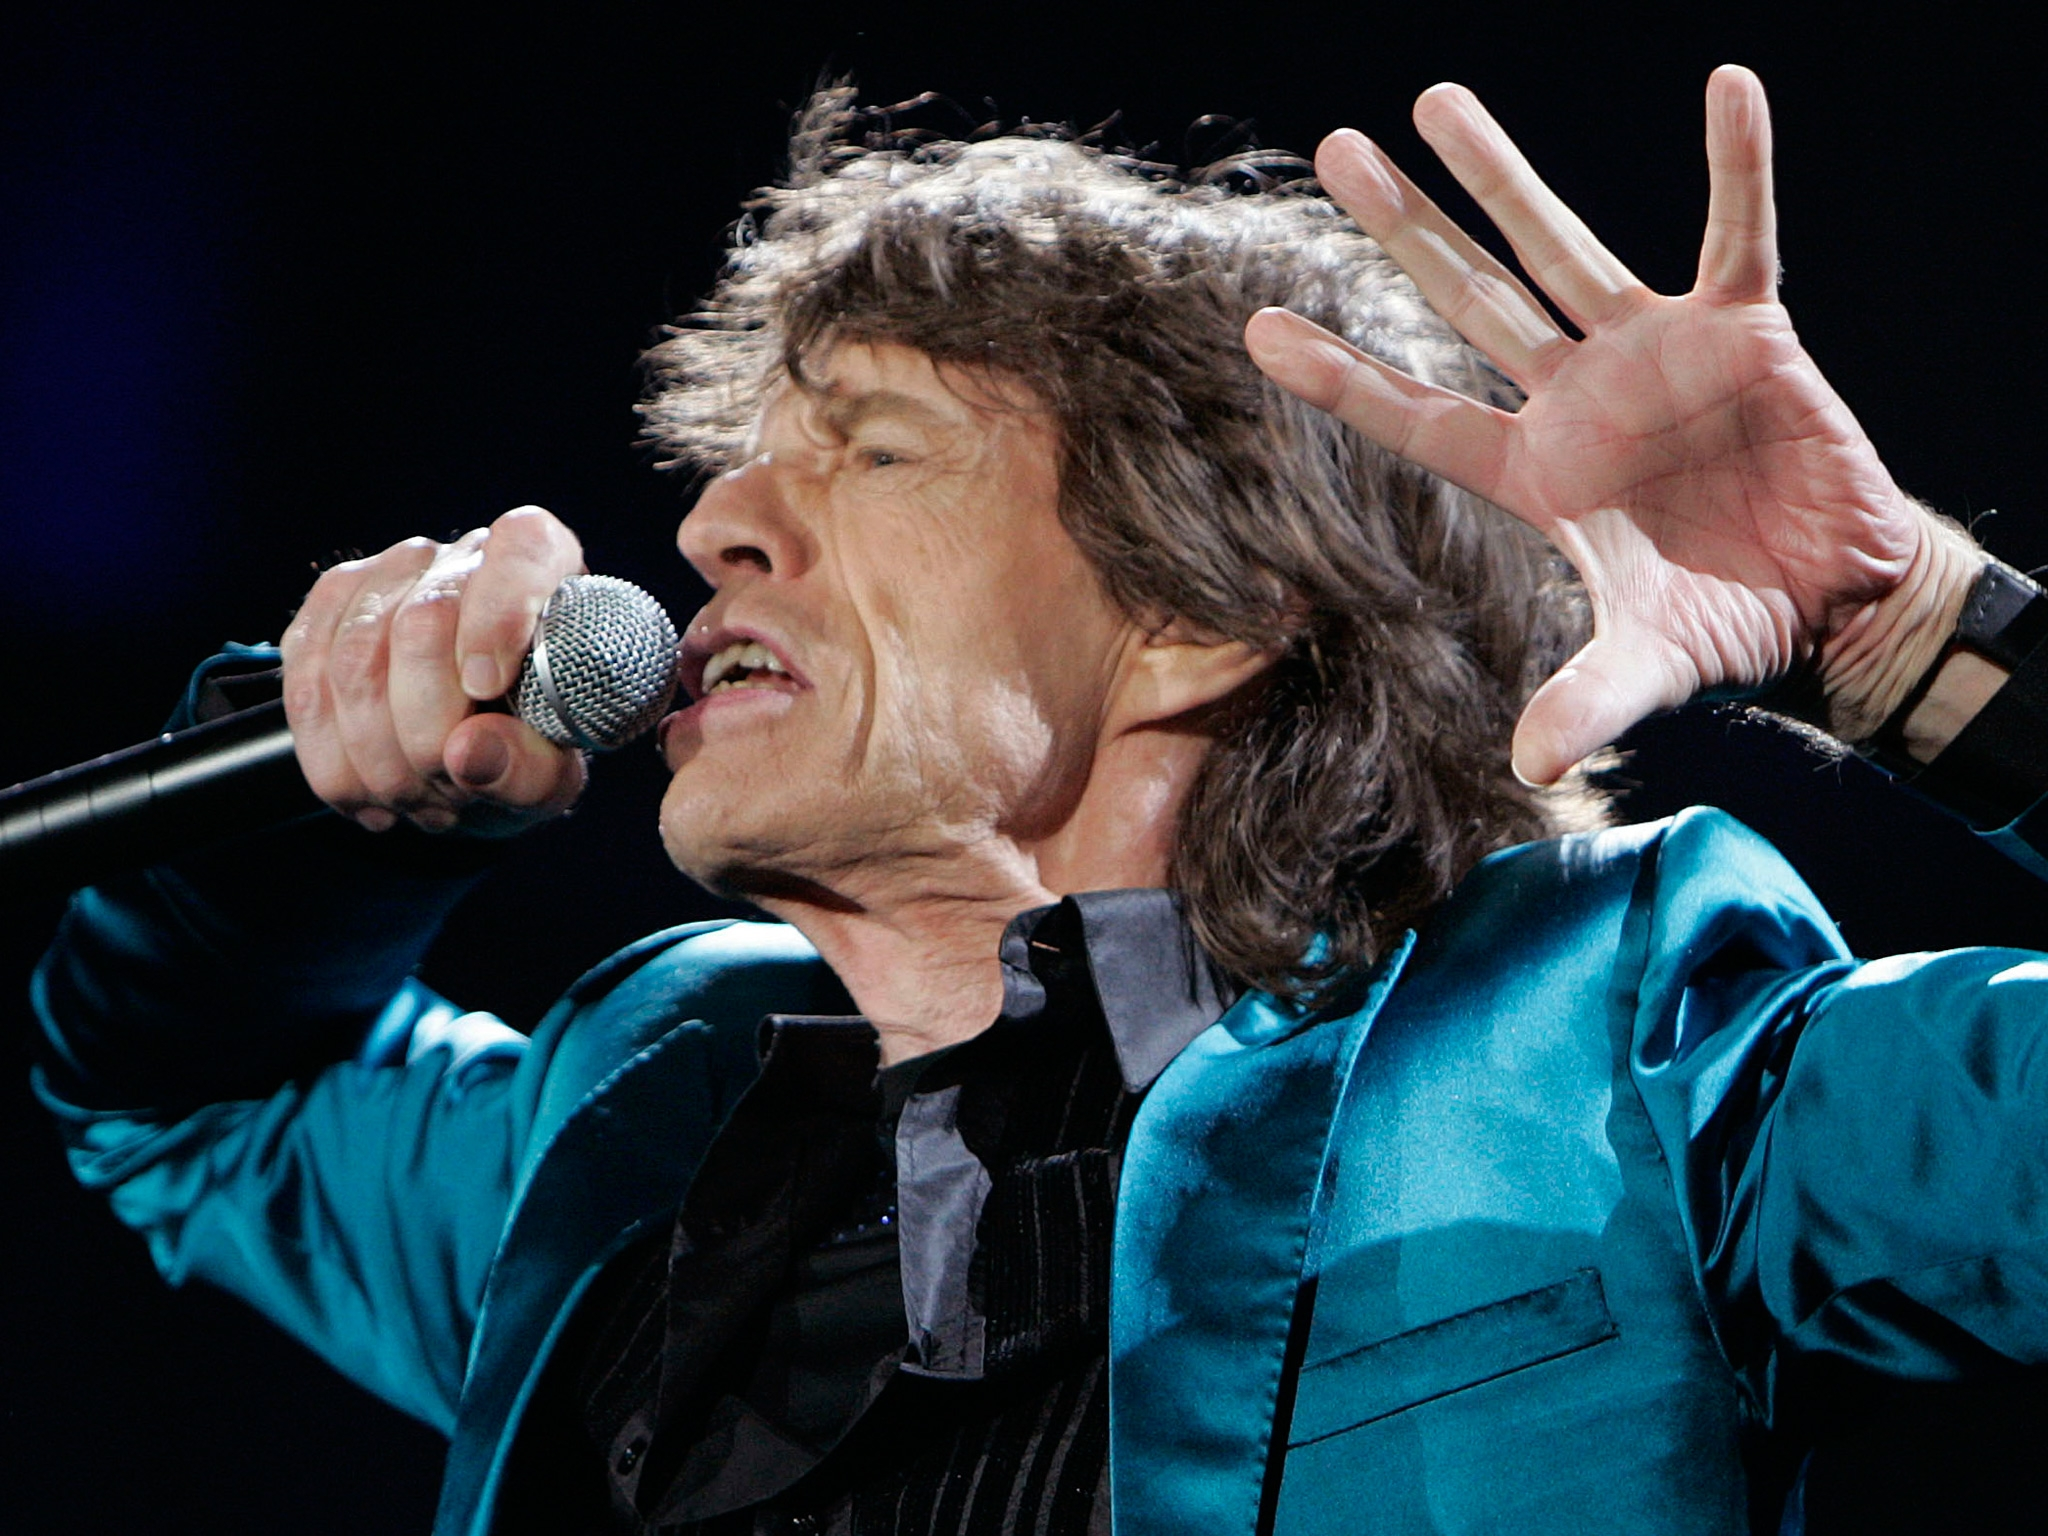 Mick Jagger of the Rolling Stones is shown. (AP Photo)